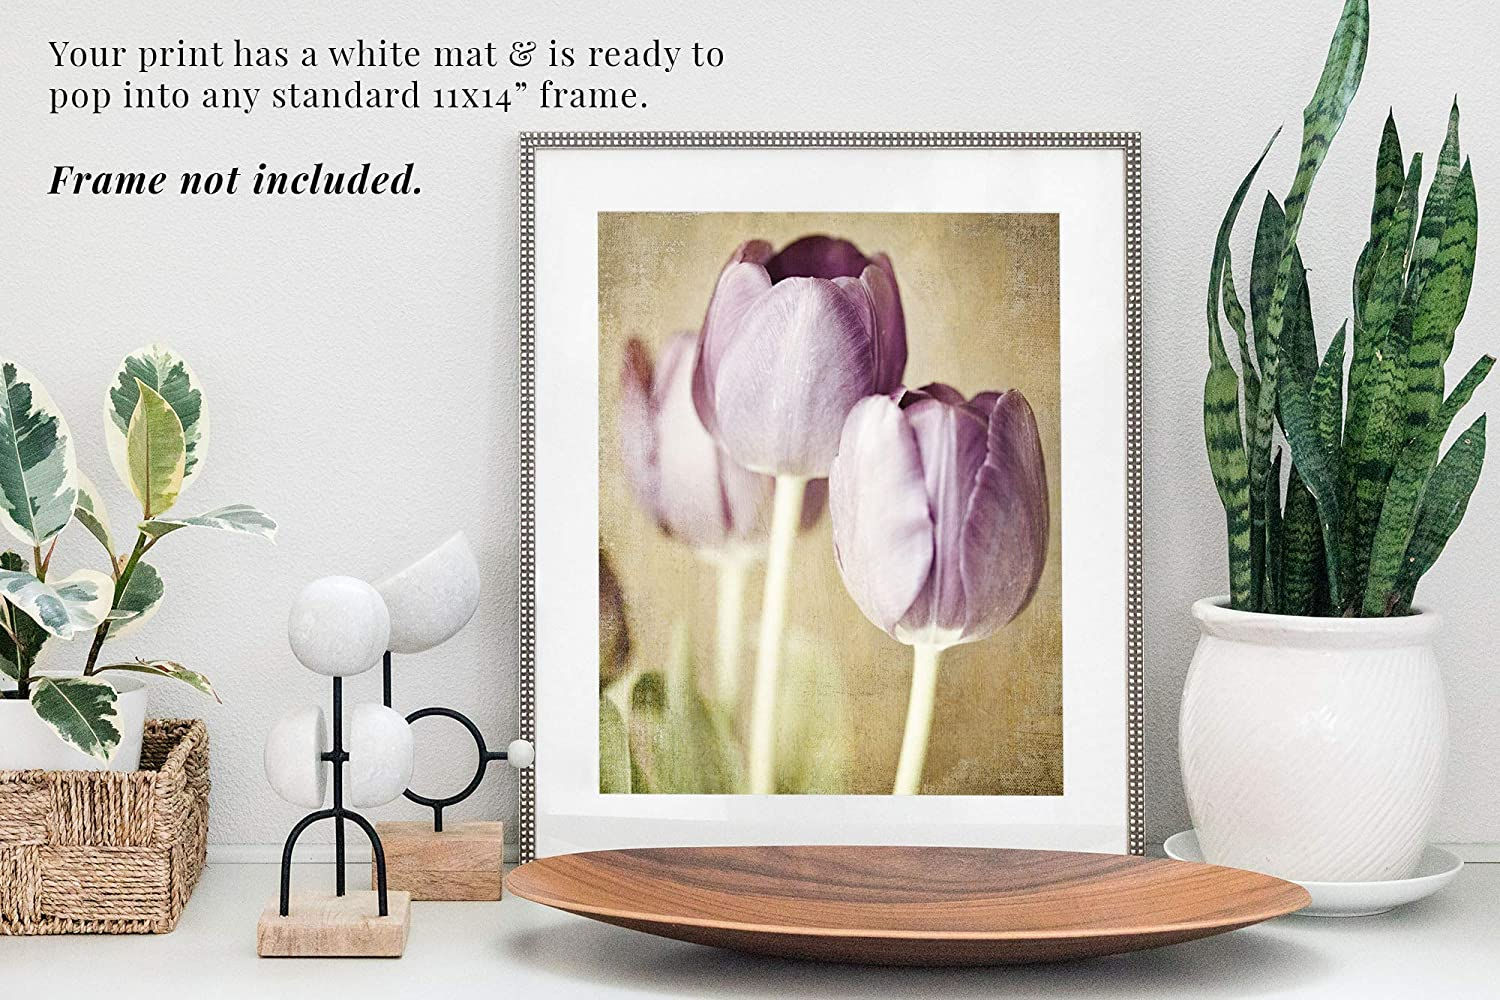 Fits 11x14 Frame Pastel Purple Tulip Flower Decor Pre-Matted 8x10 Print Shabby Chic Wall Art Nursery or Bedroom Artwork. Botanical Nature Photography for Bathroom